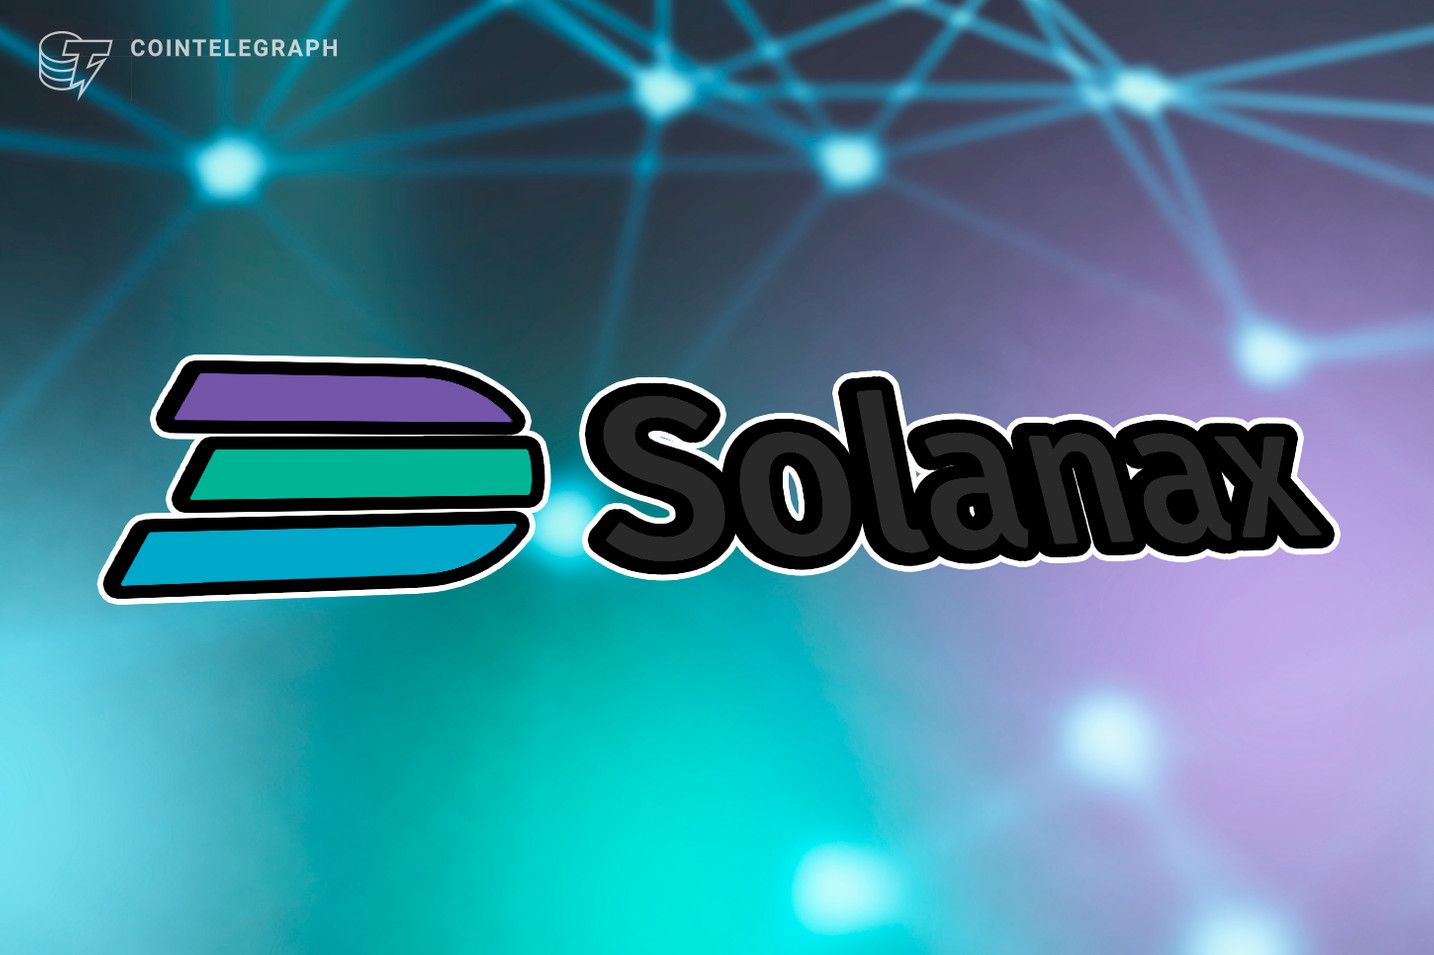 Solanax: Redefining the DeFi sector